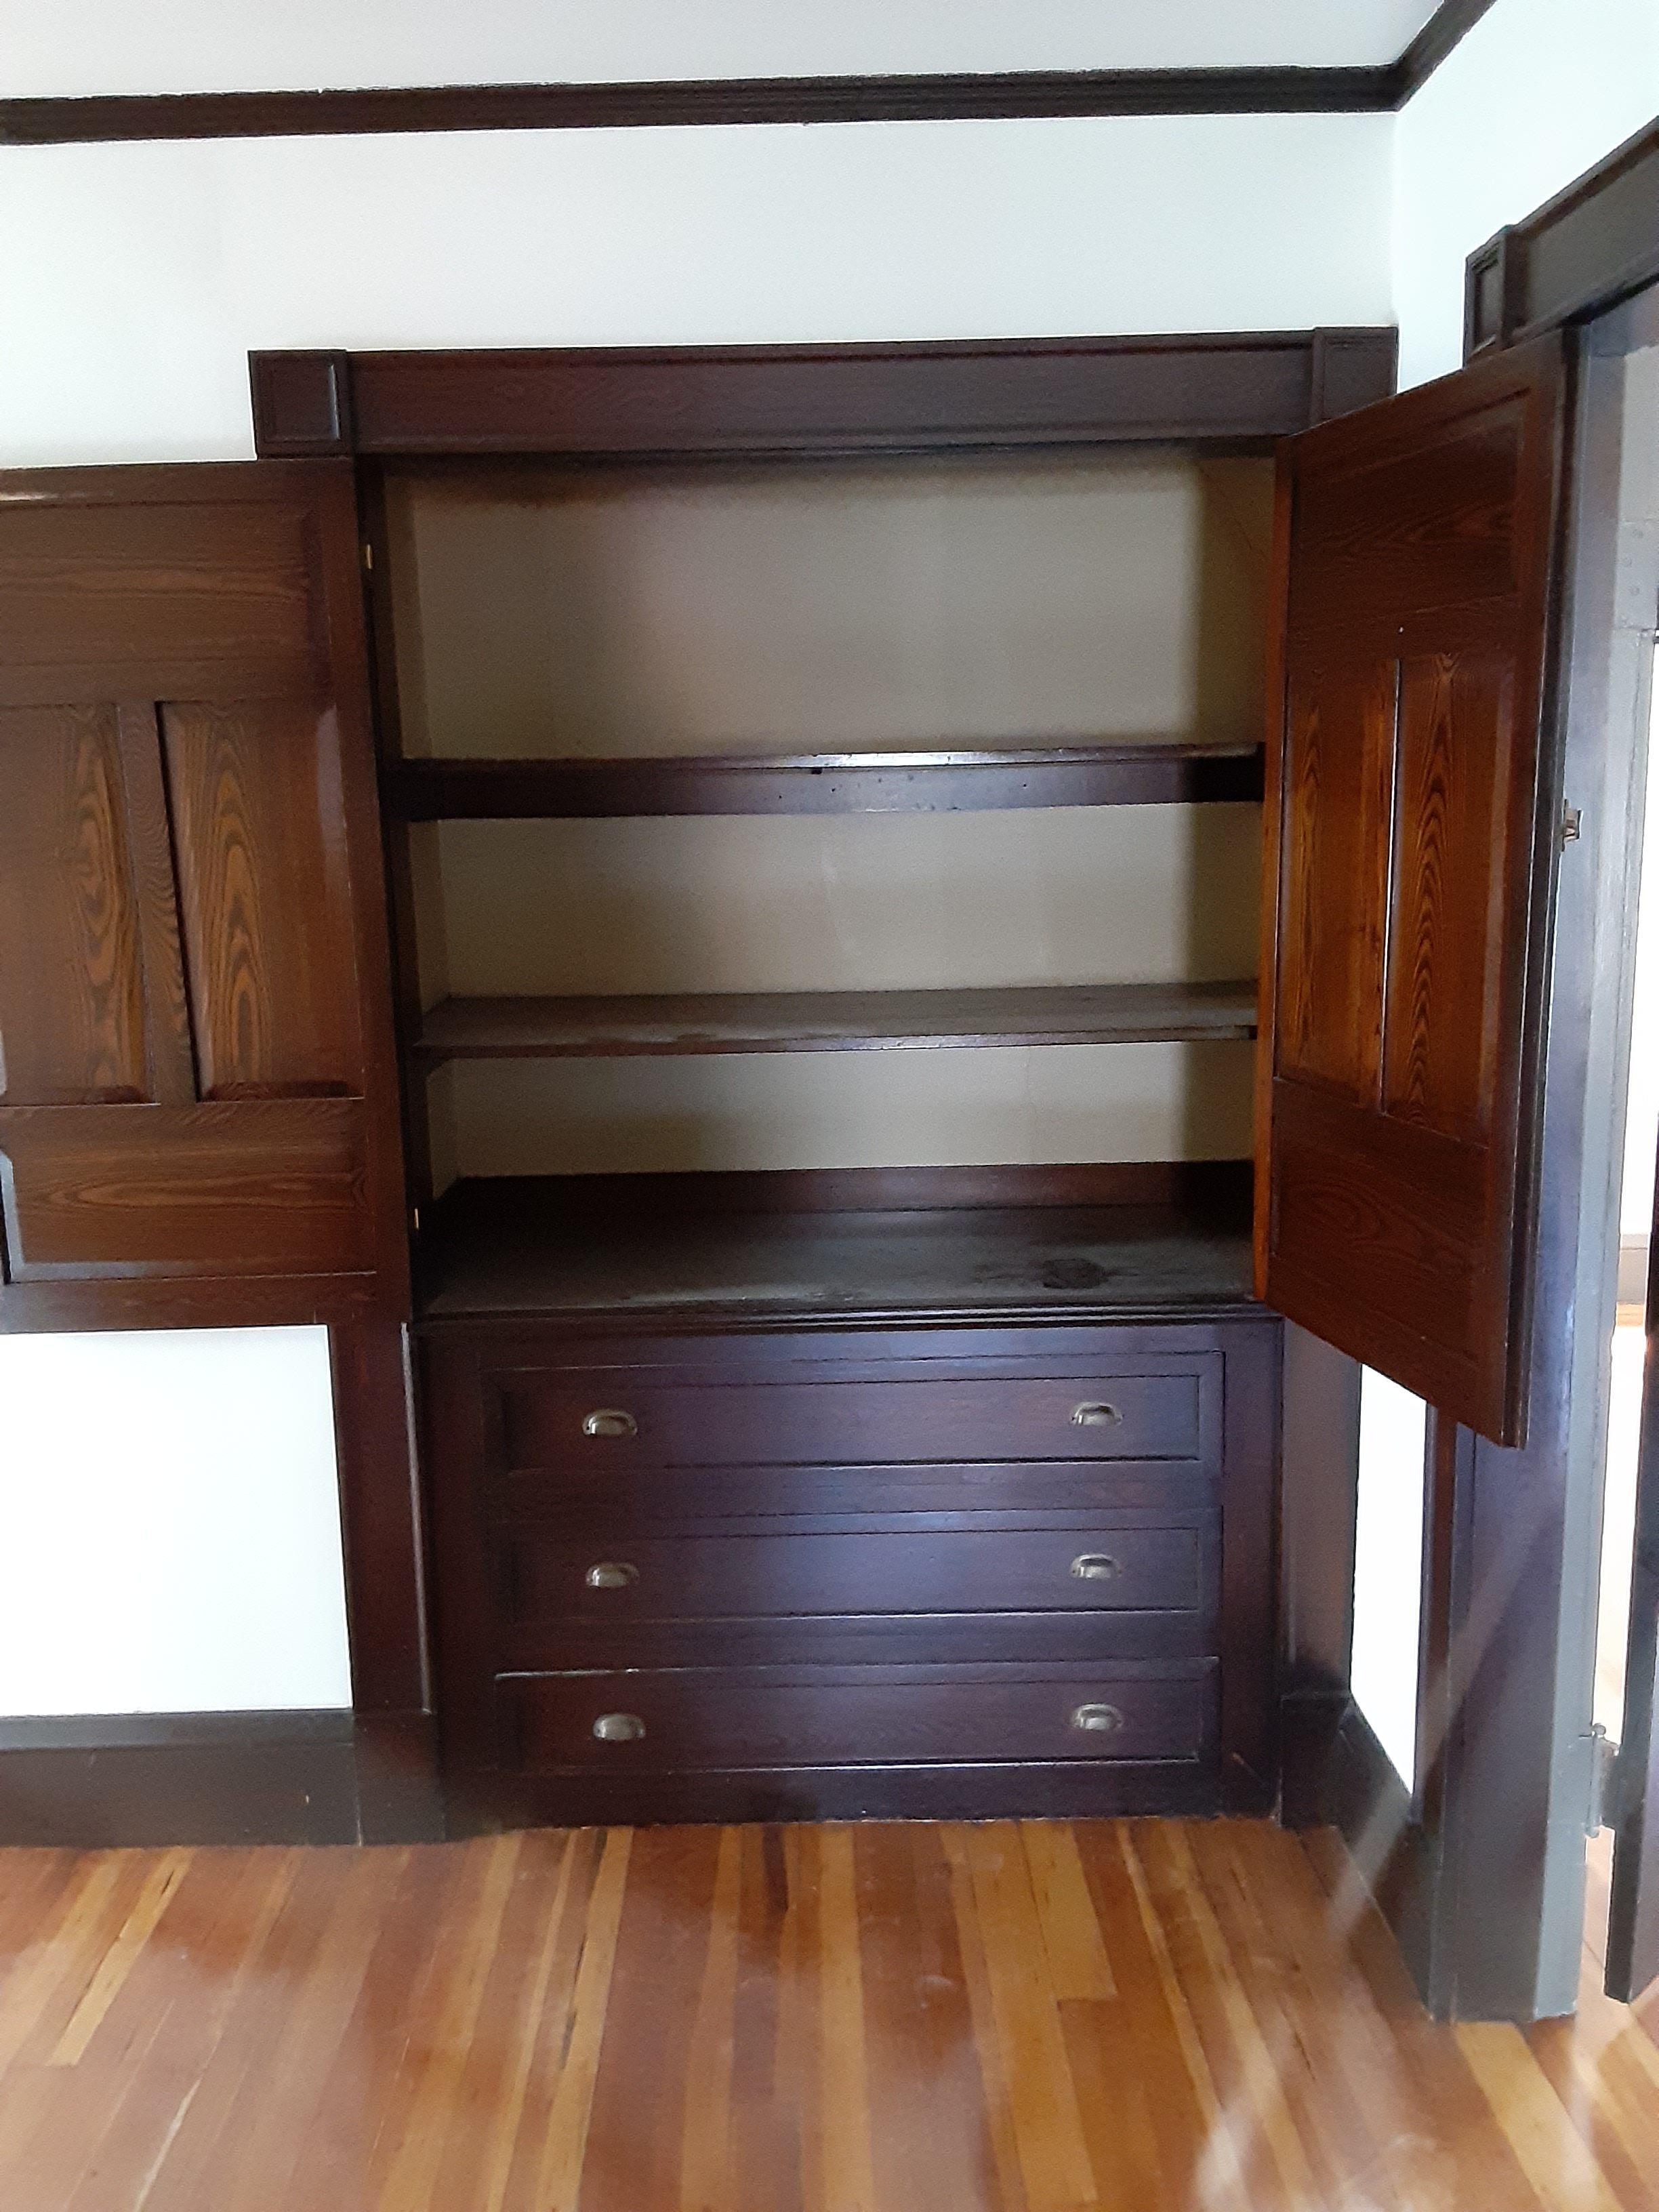 Contemporary photo of a brown wooden cabinet with the doors open.